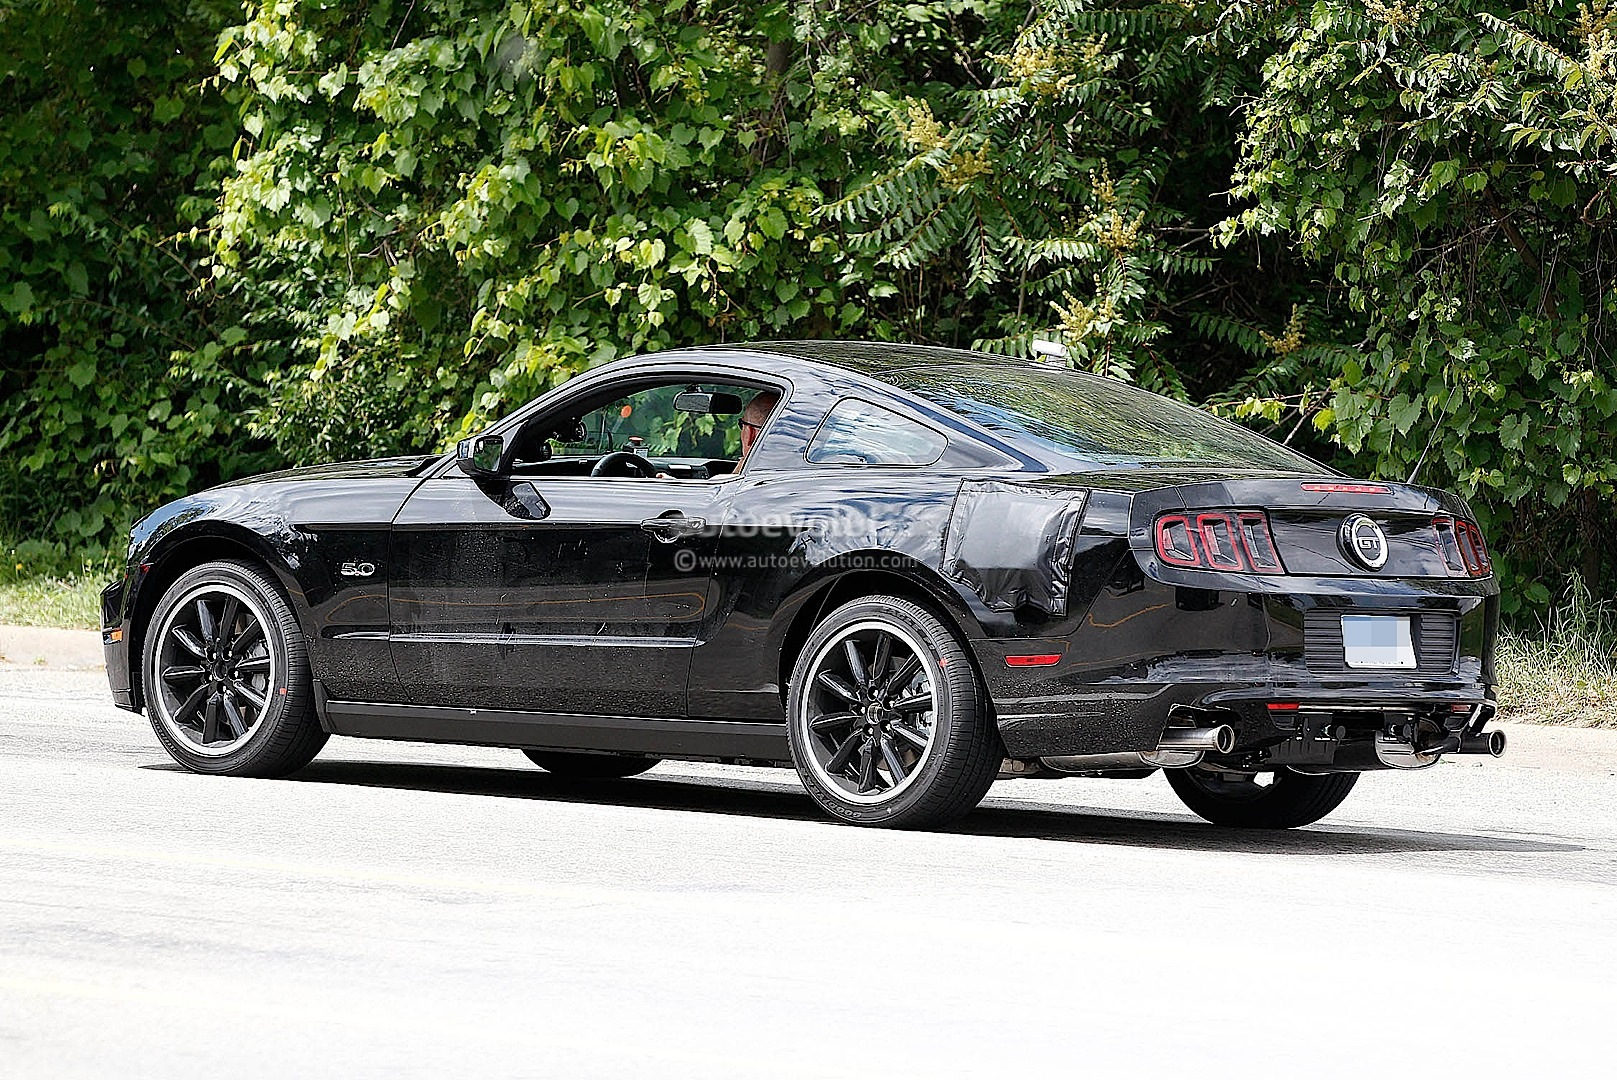 spyshots 2015 ford mustang autoevolution. Black Bedroom Furniture Sets. Home Design Ideas